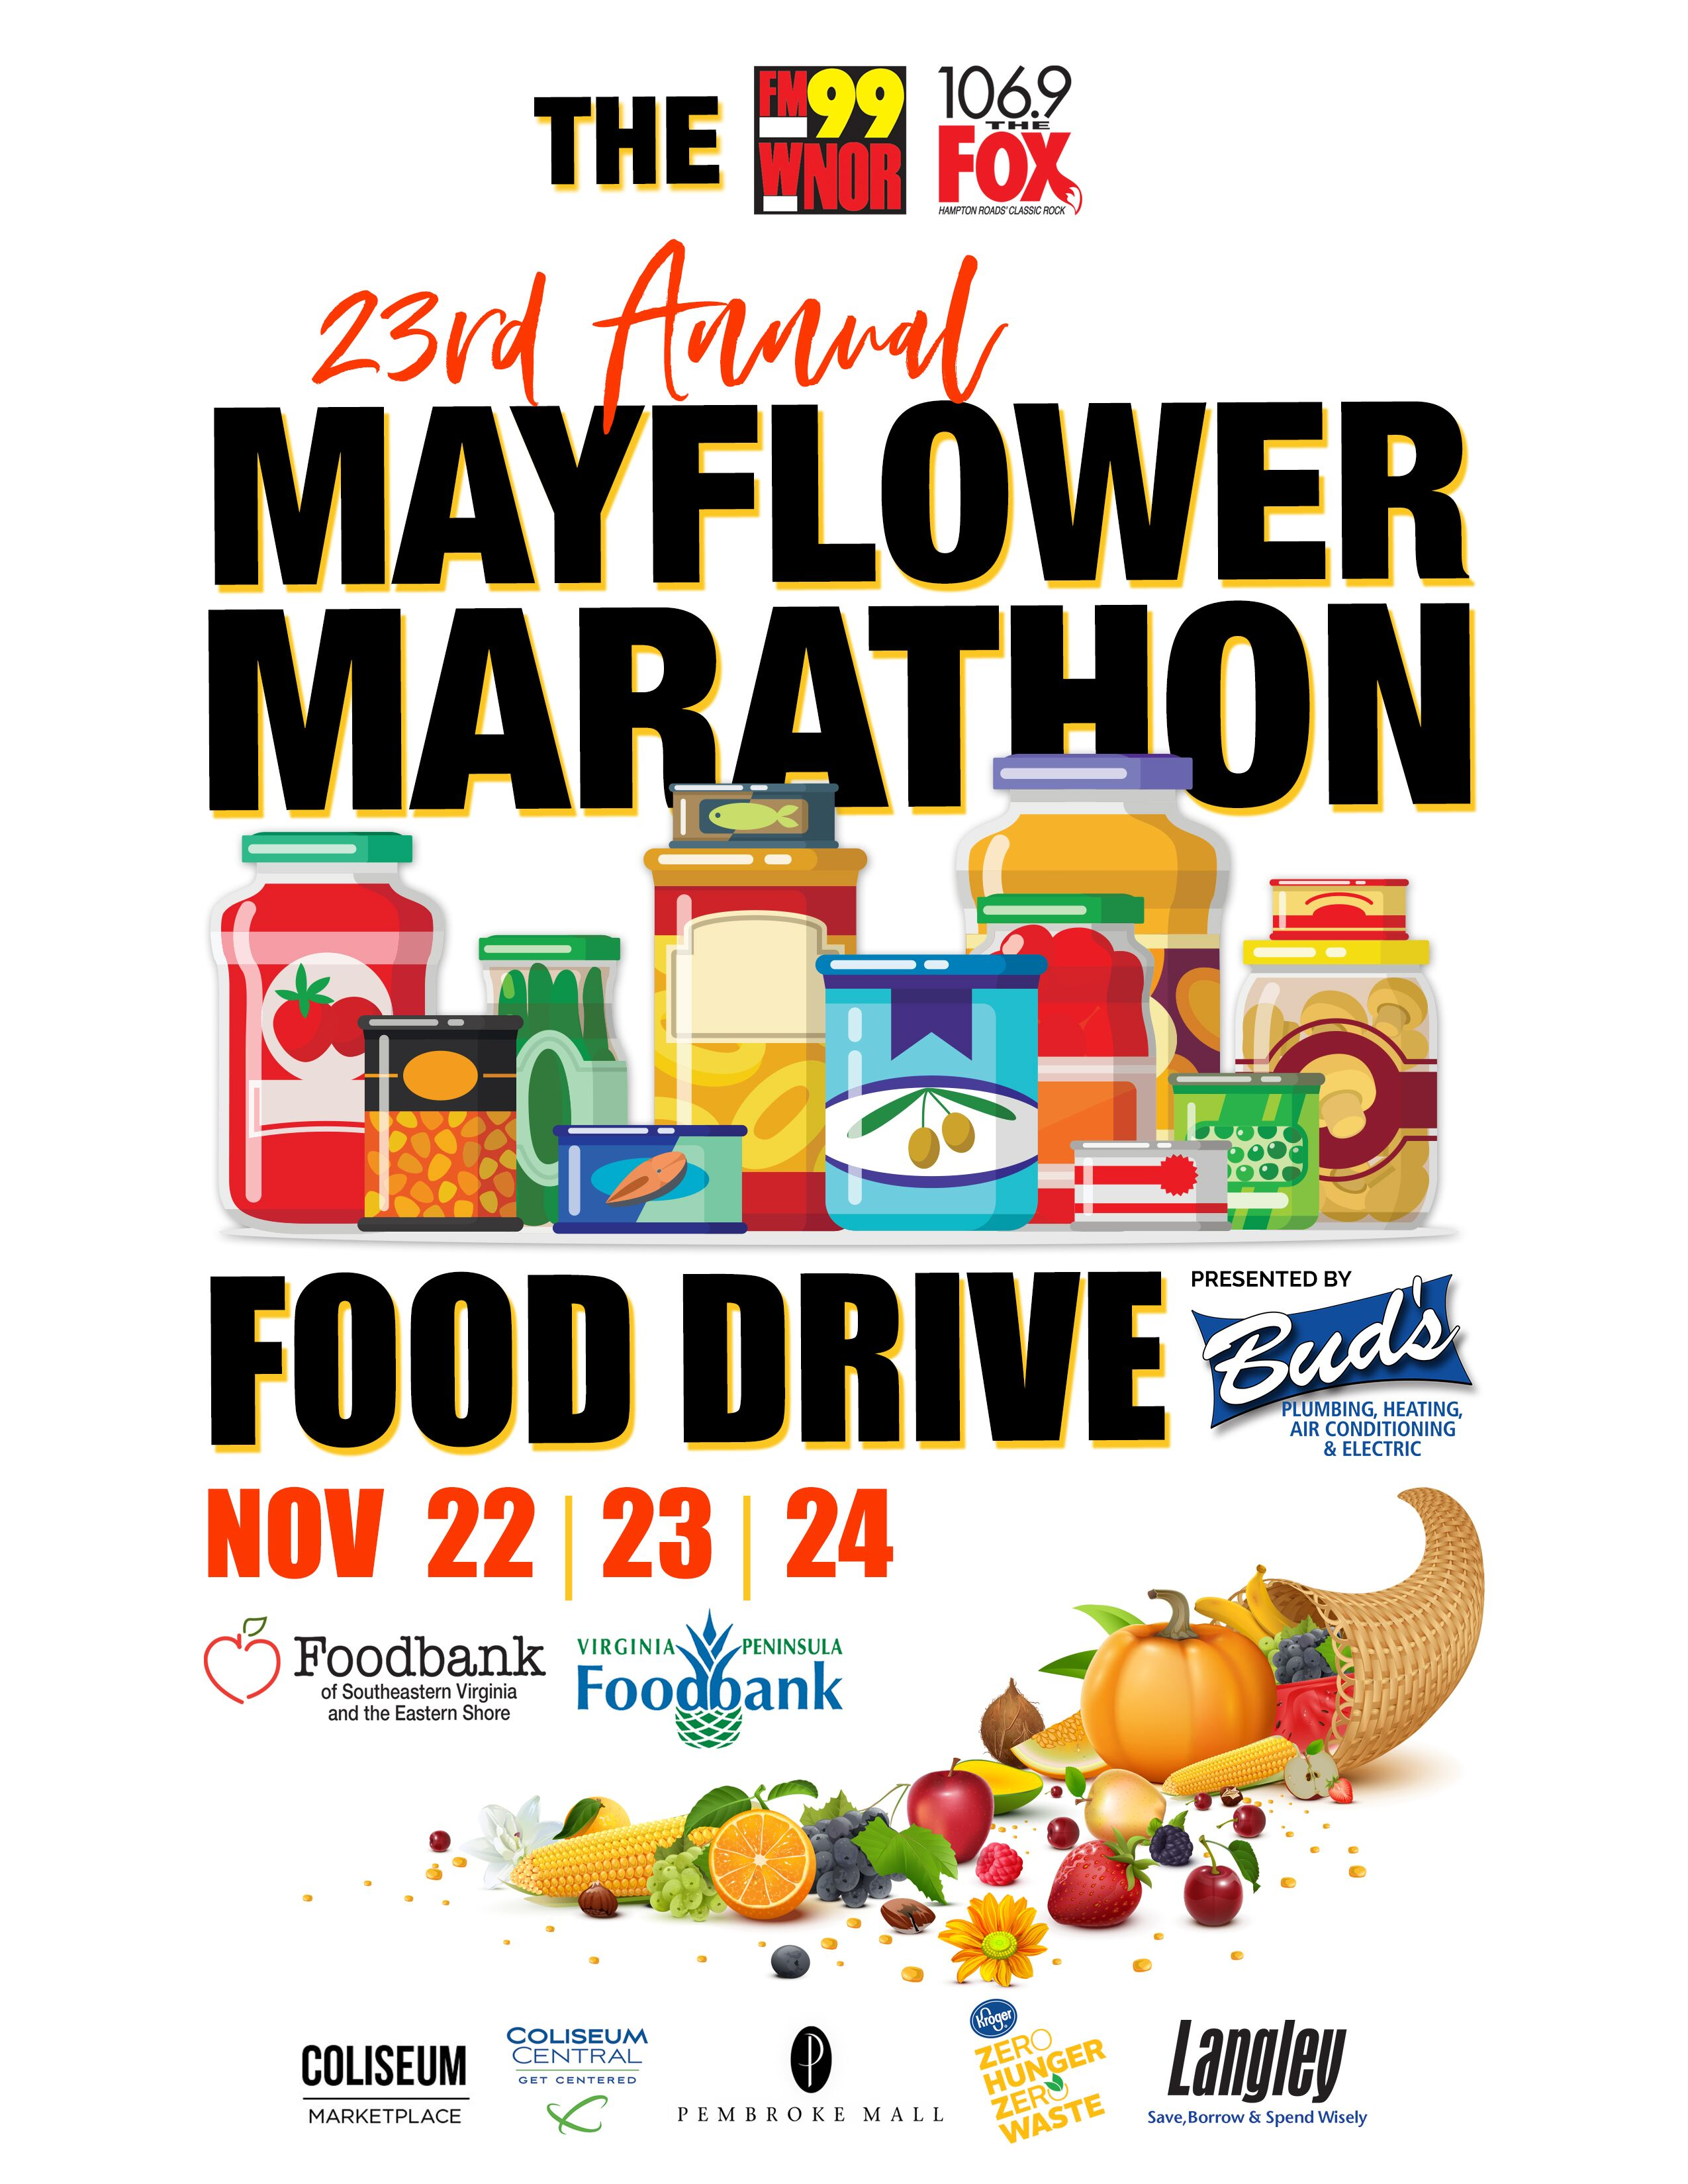 FM99 and 106.9 The Fox Host 23rd Annual Mayflower Marathon